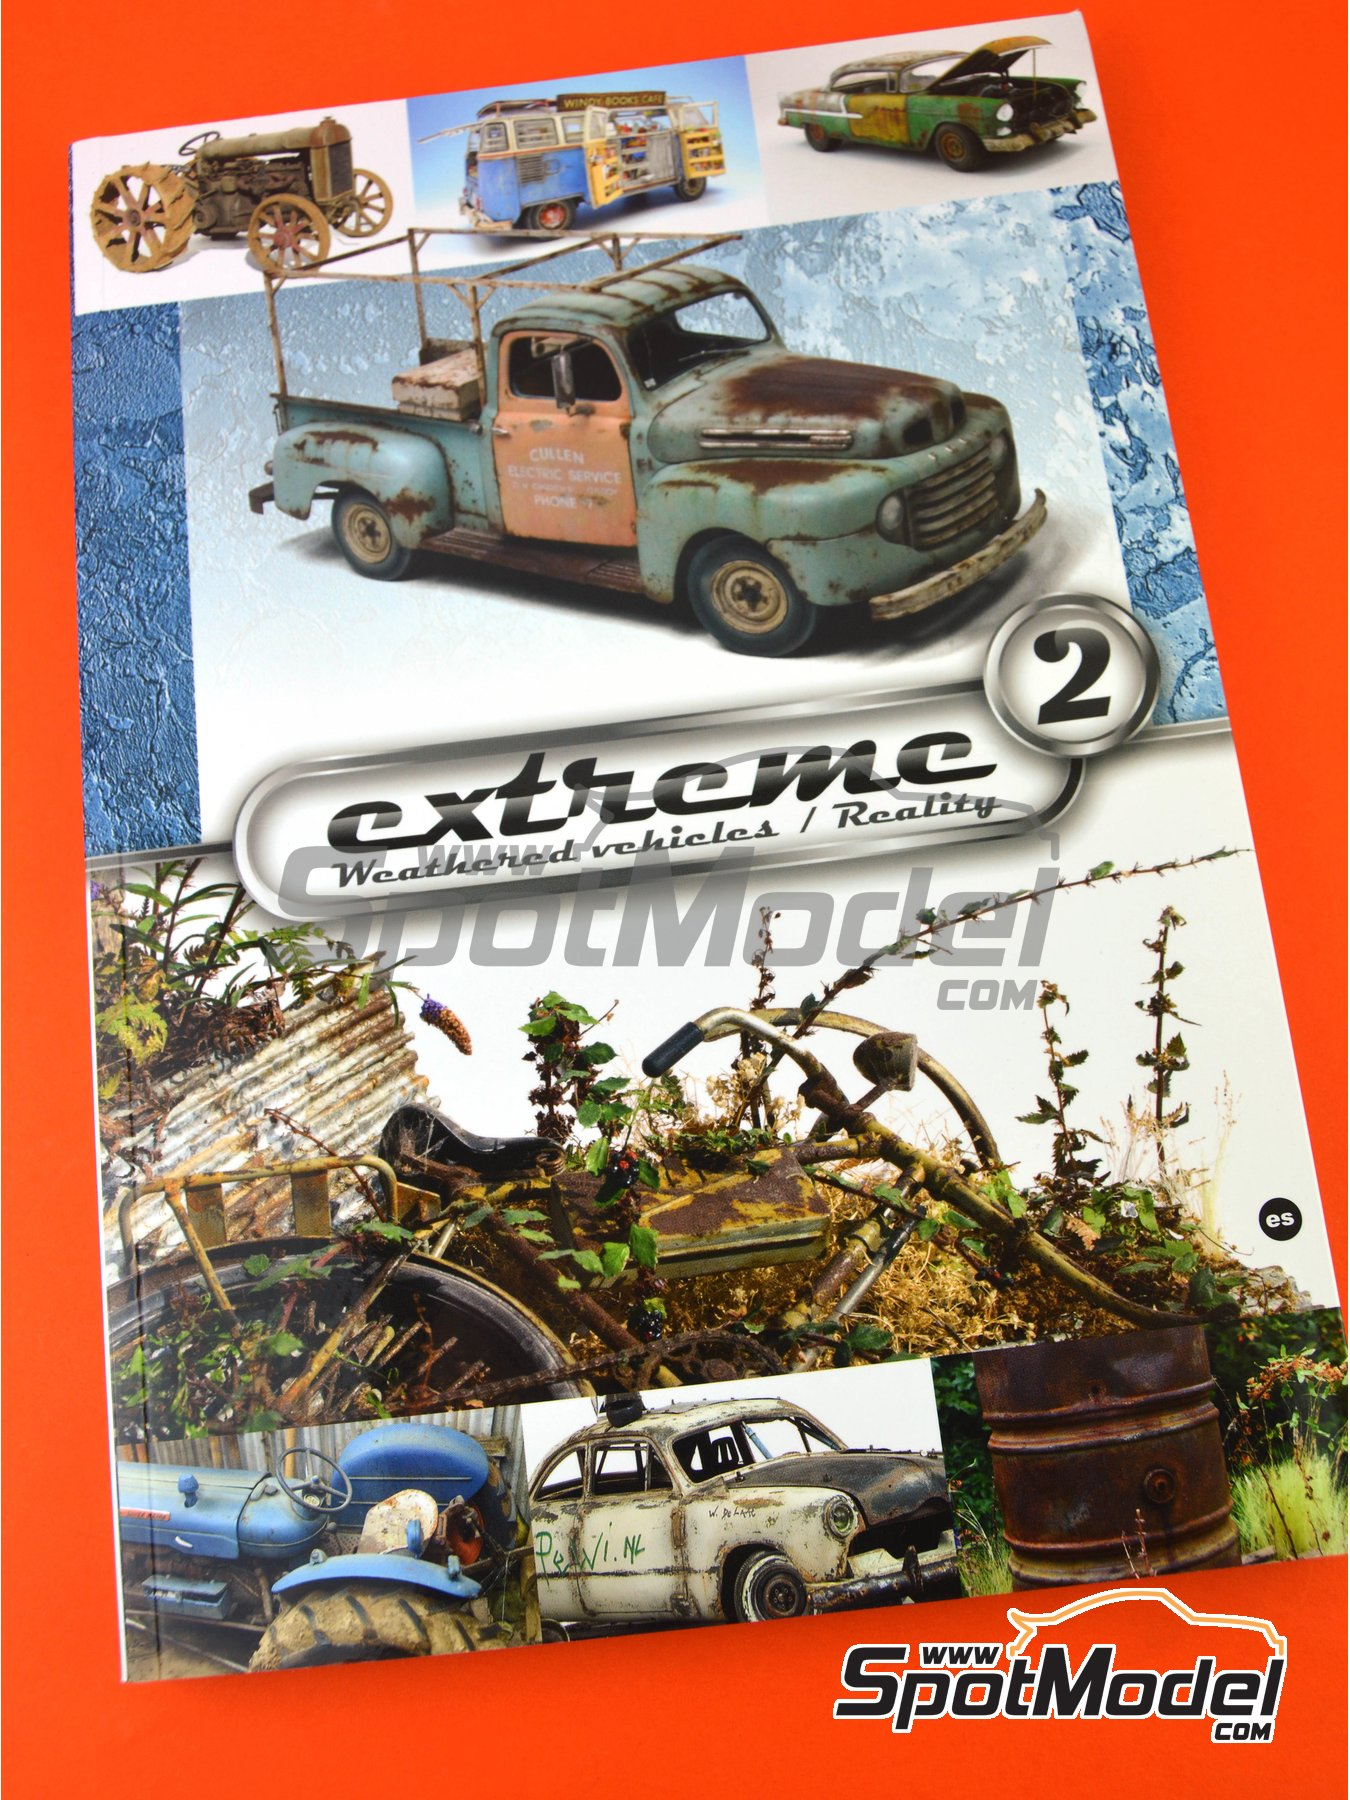 Extreme2 - Extreme Weathered vehicles + Extreme reality: Spanish language | Book manufactured by AK Interactive (ref. AK-504) image